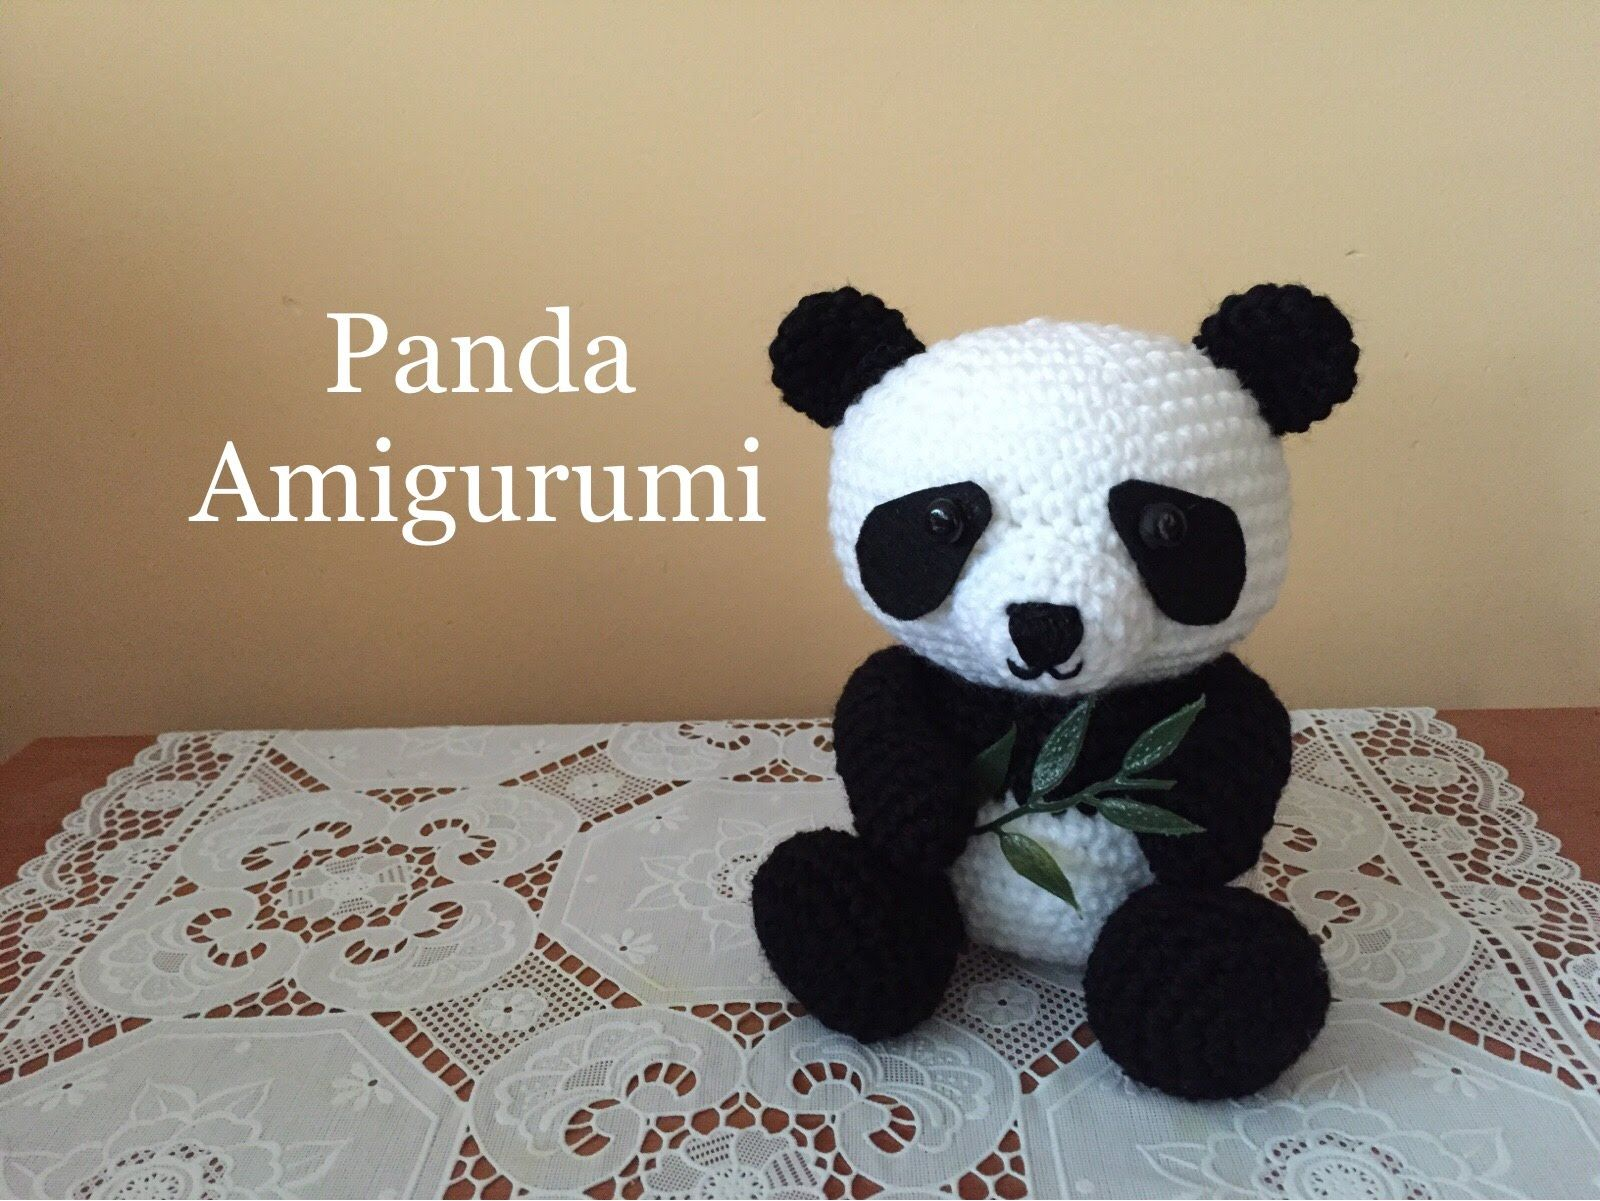 Panda Amigurumi (tutorial) knitt and crochet Pinterest ...